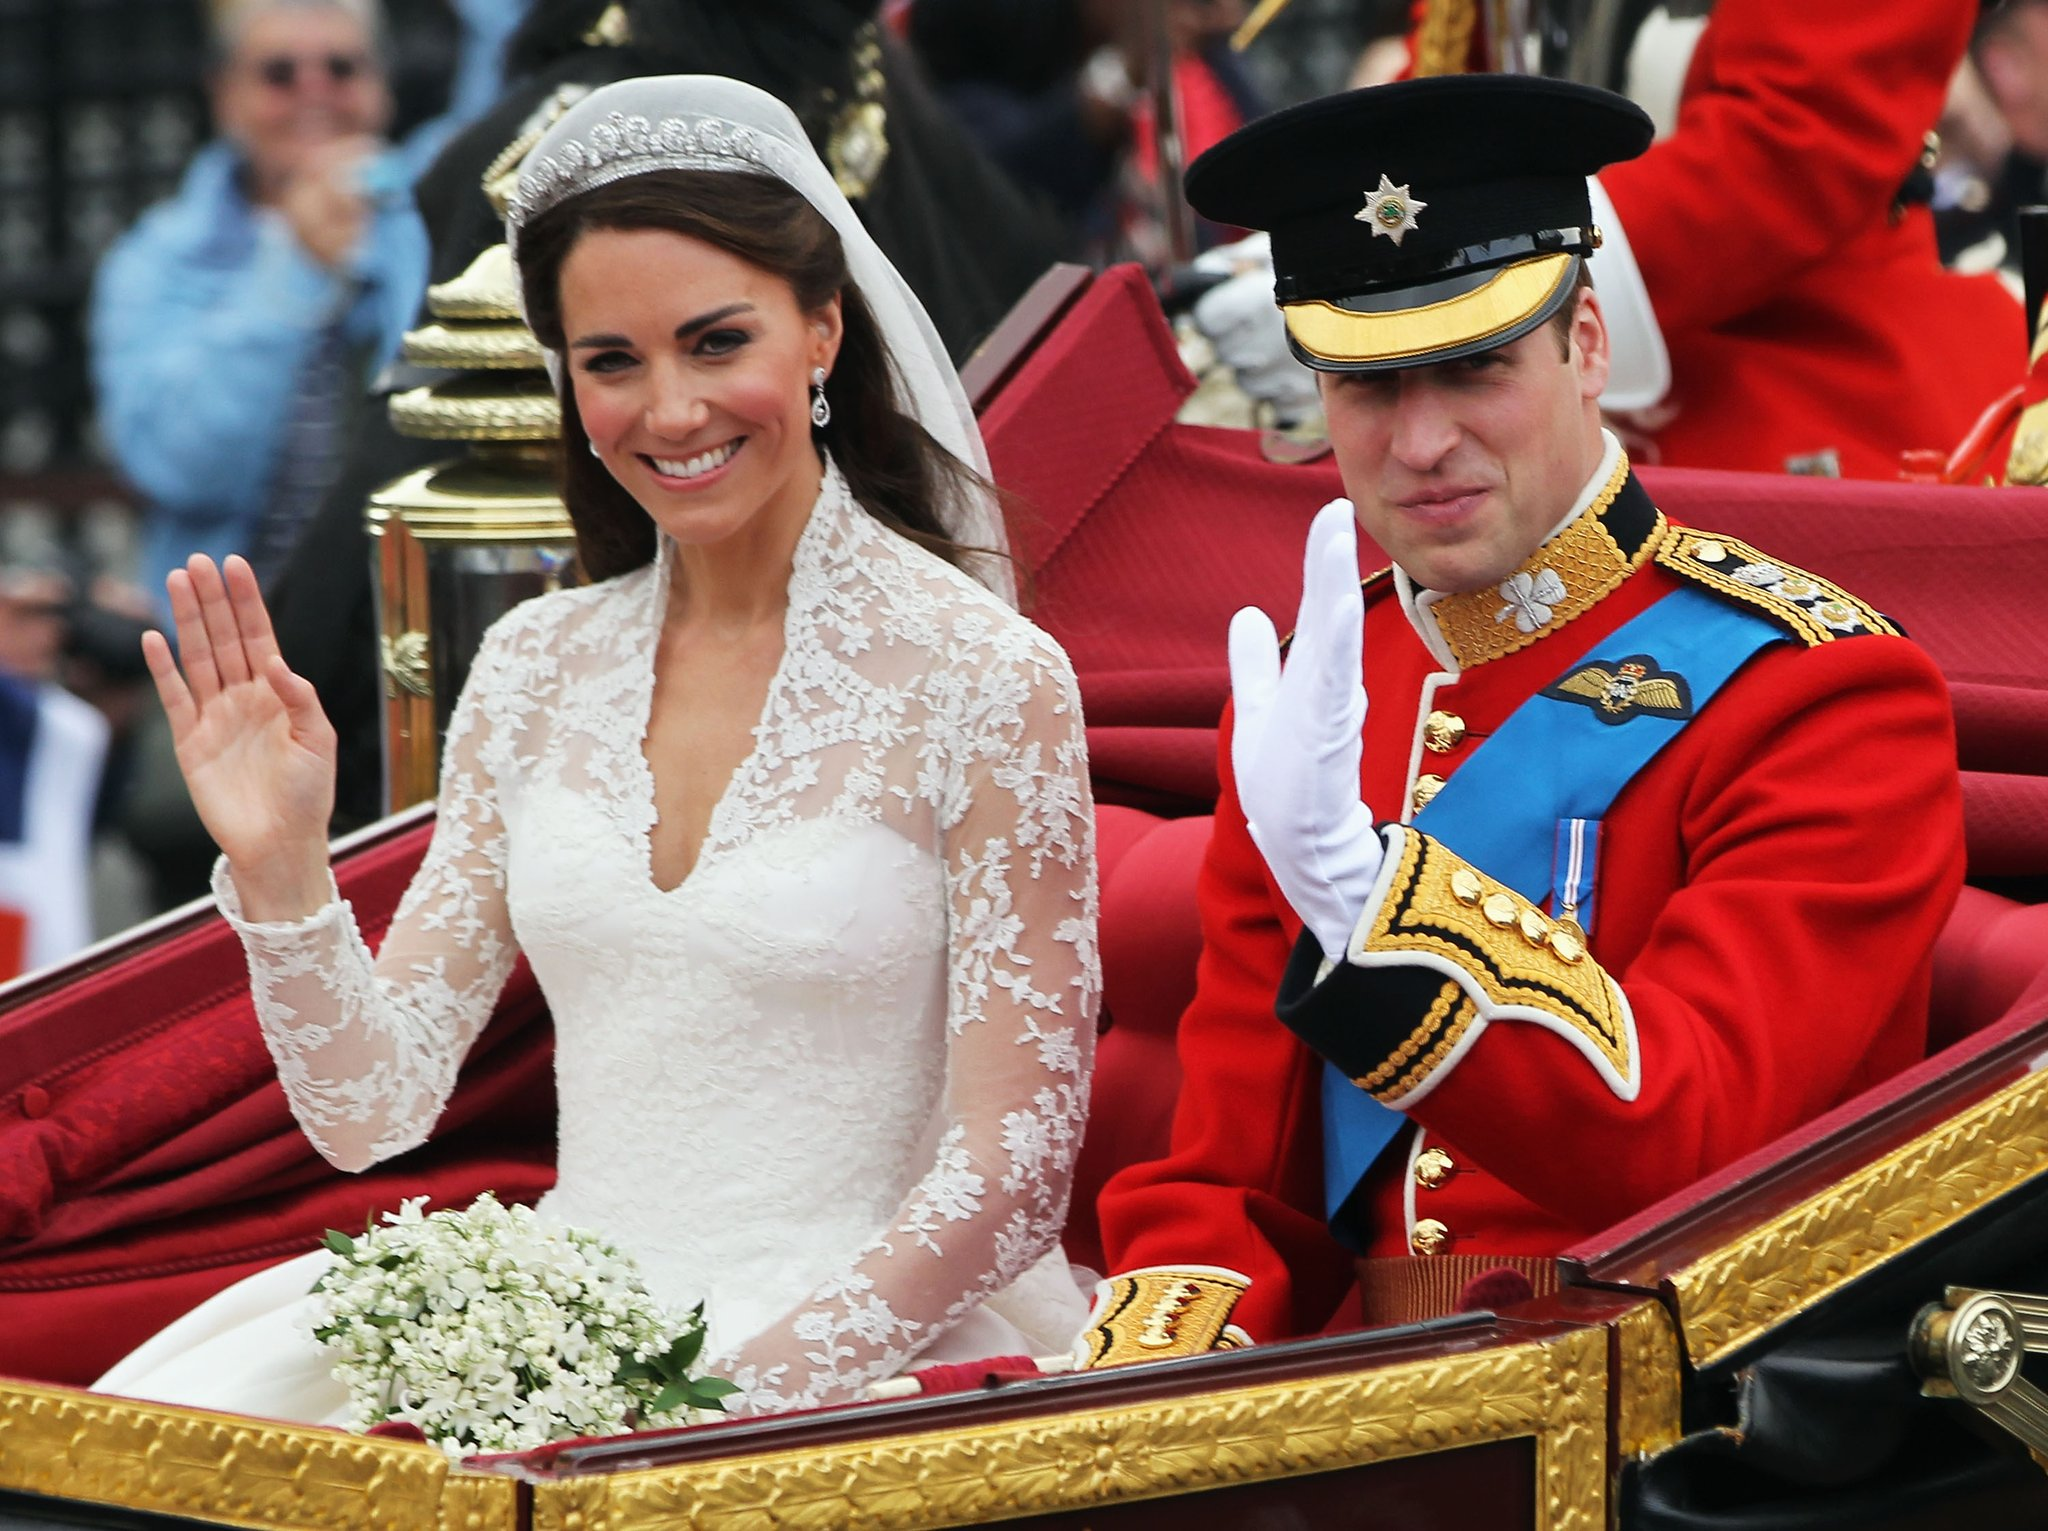 Prince William of England marries Kate Middleton.